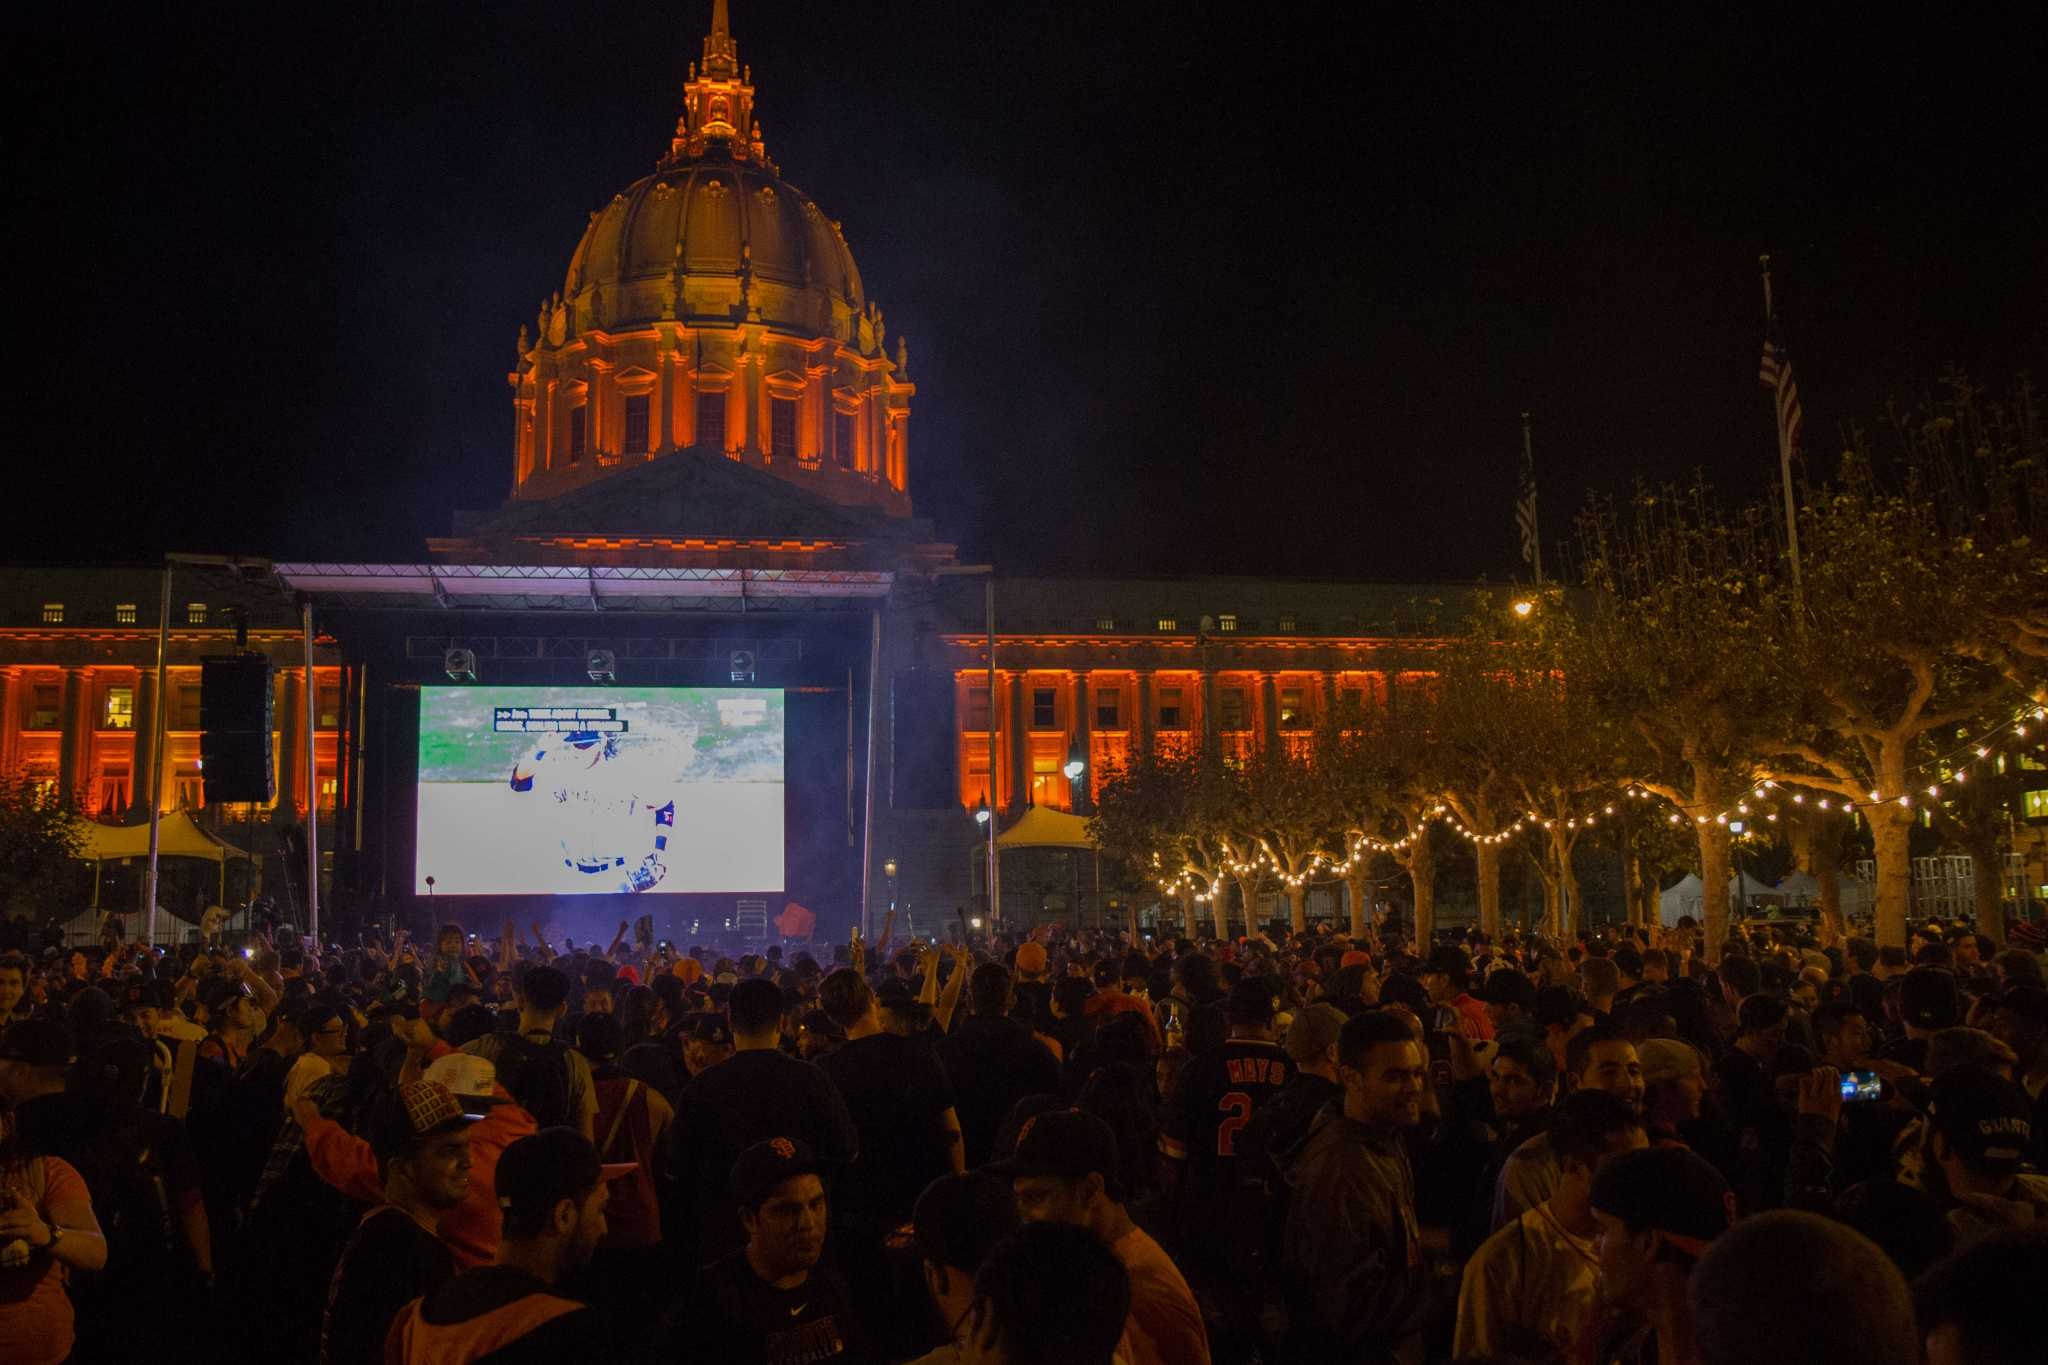 Fans celebrate the Giants victory during game seven of the World Series in the Civic Center Plaza in San Francisco, Calif., on Wednesday, October 29 2014.